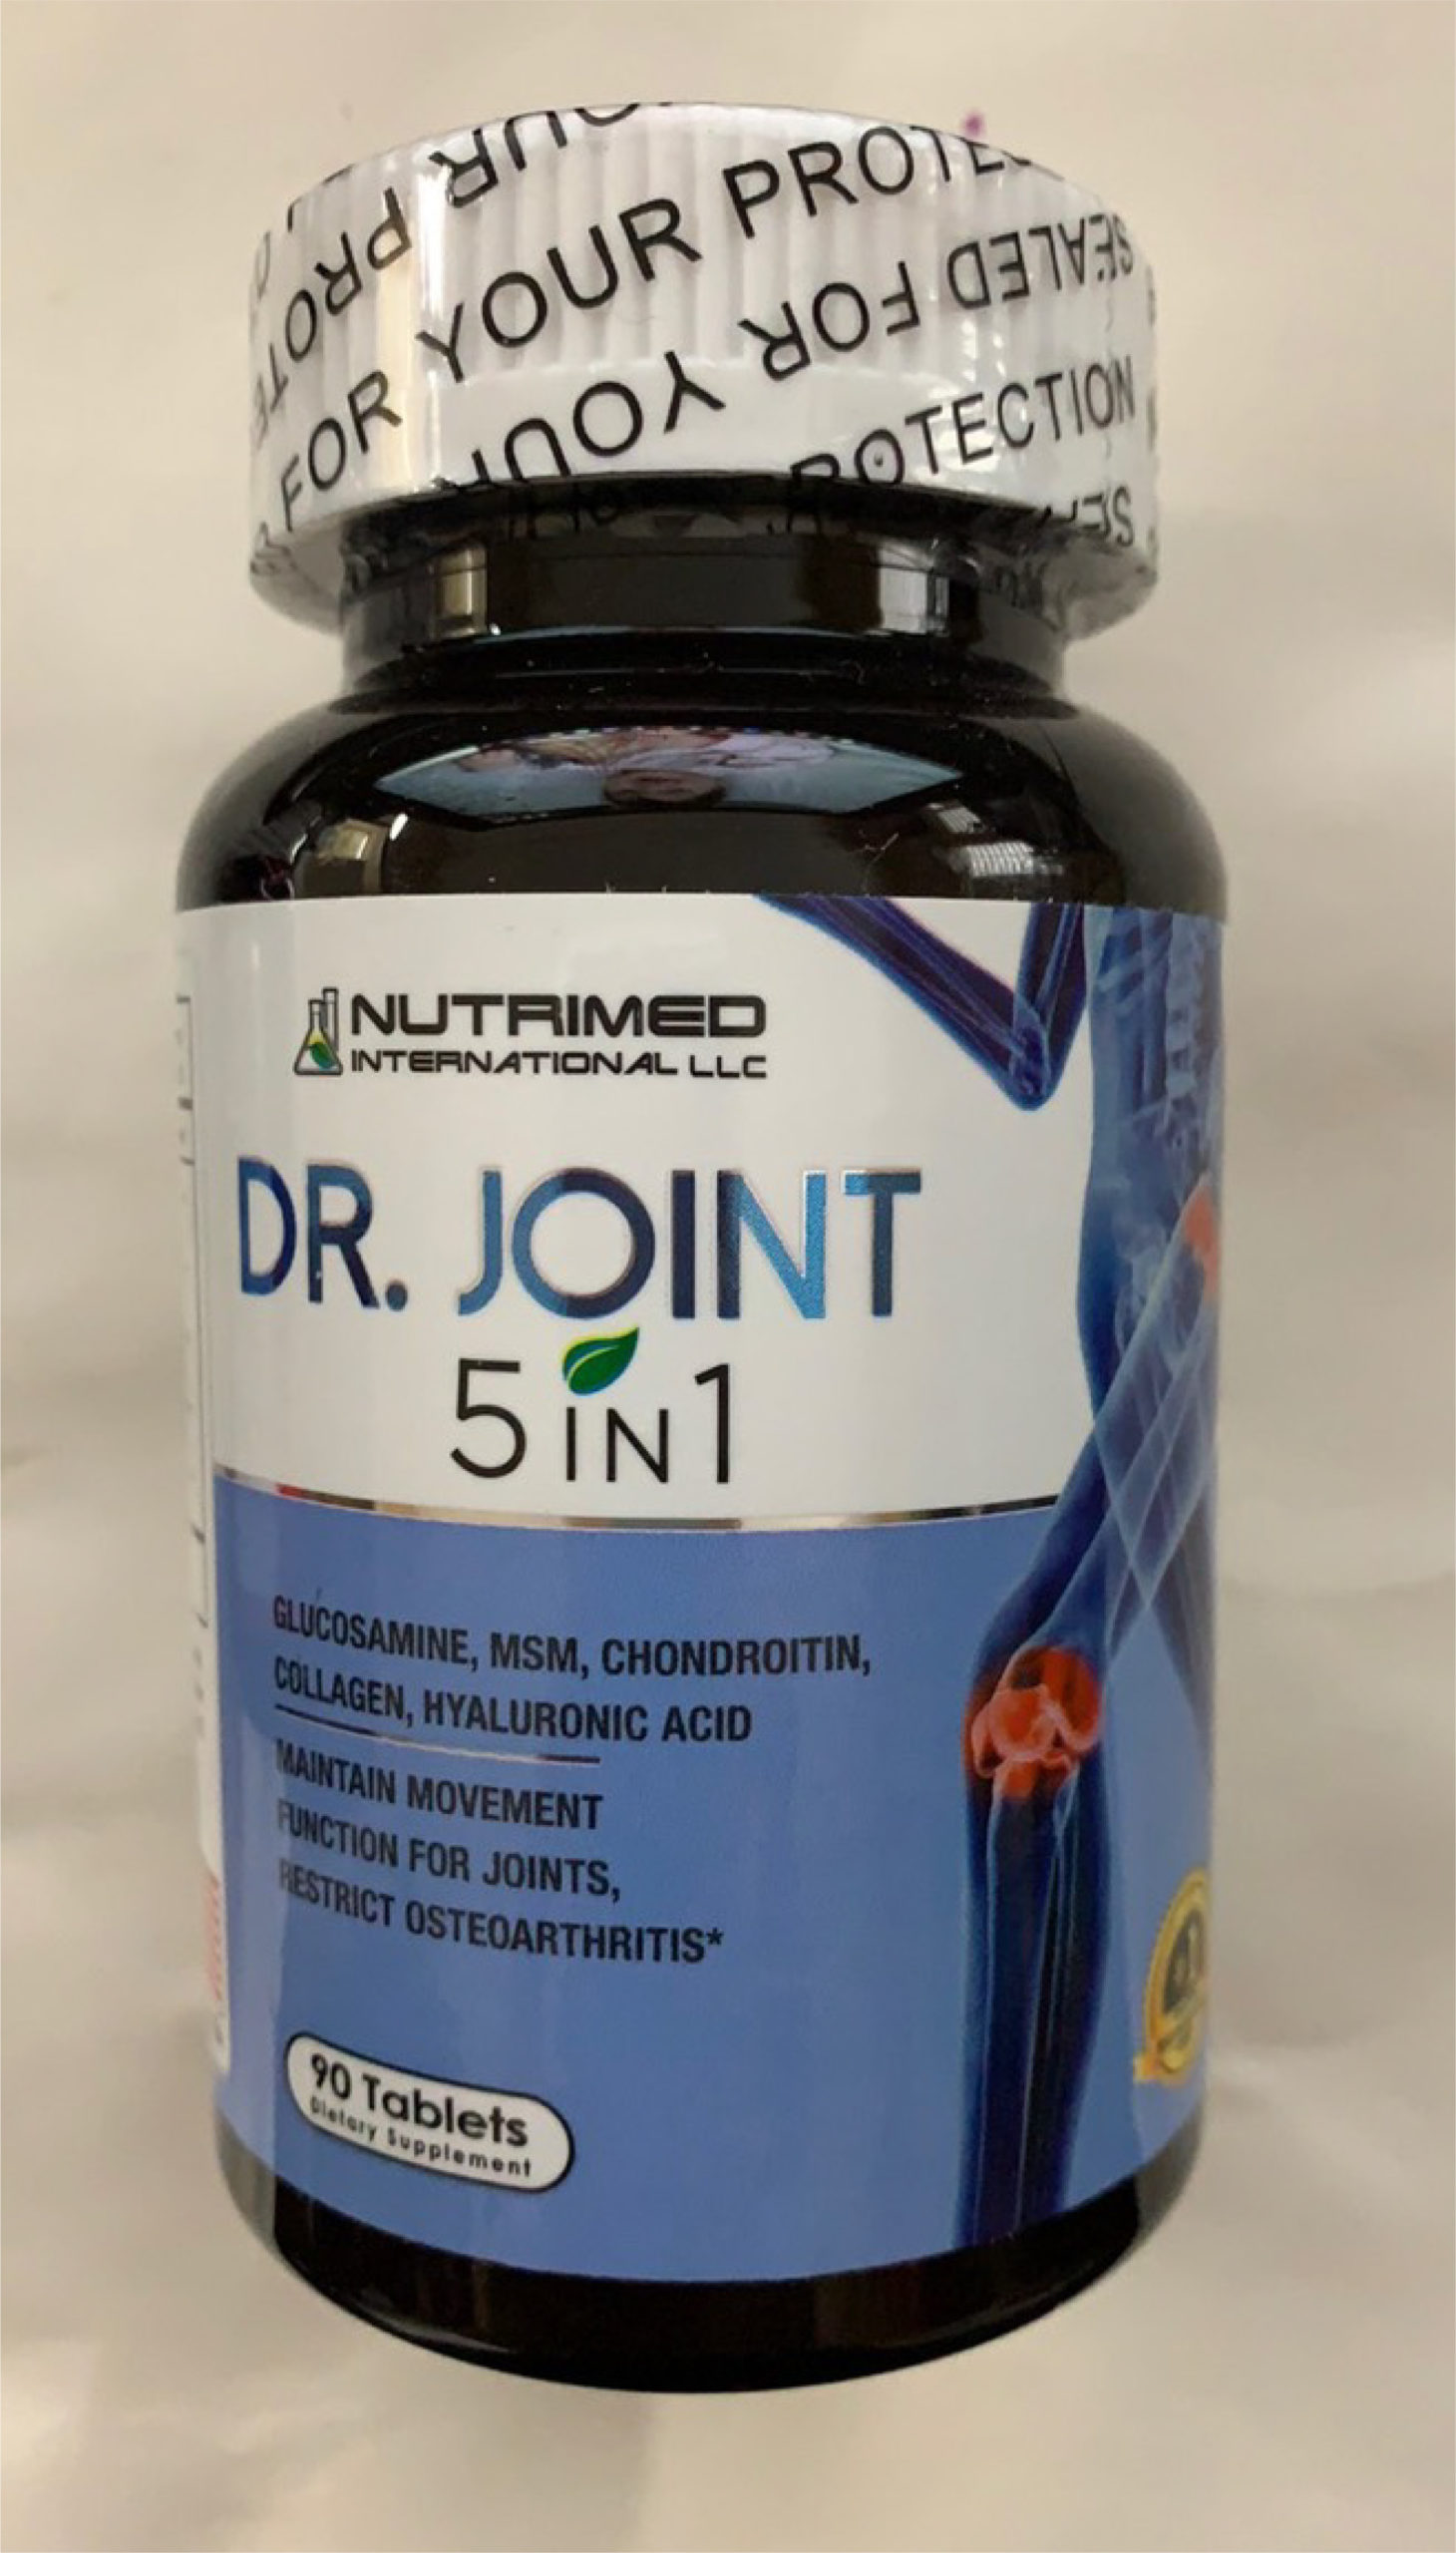 Dr. Joint 5 in 1